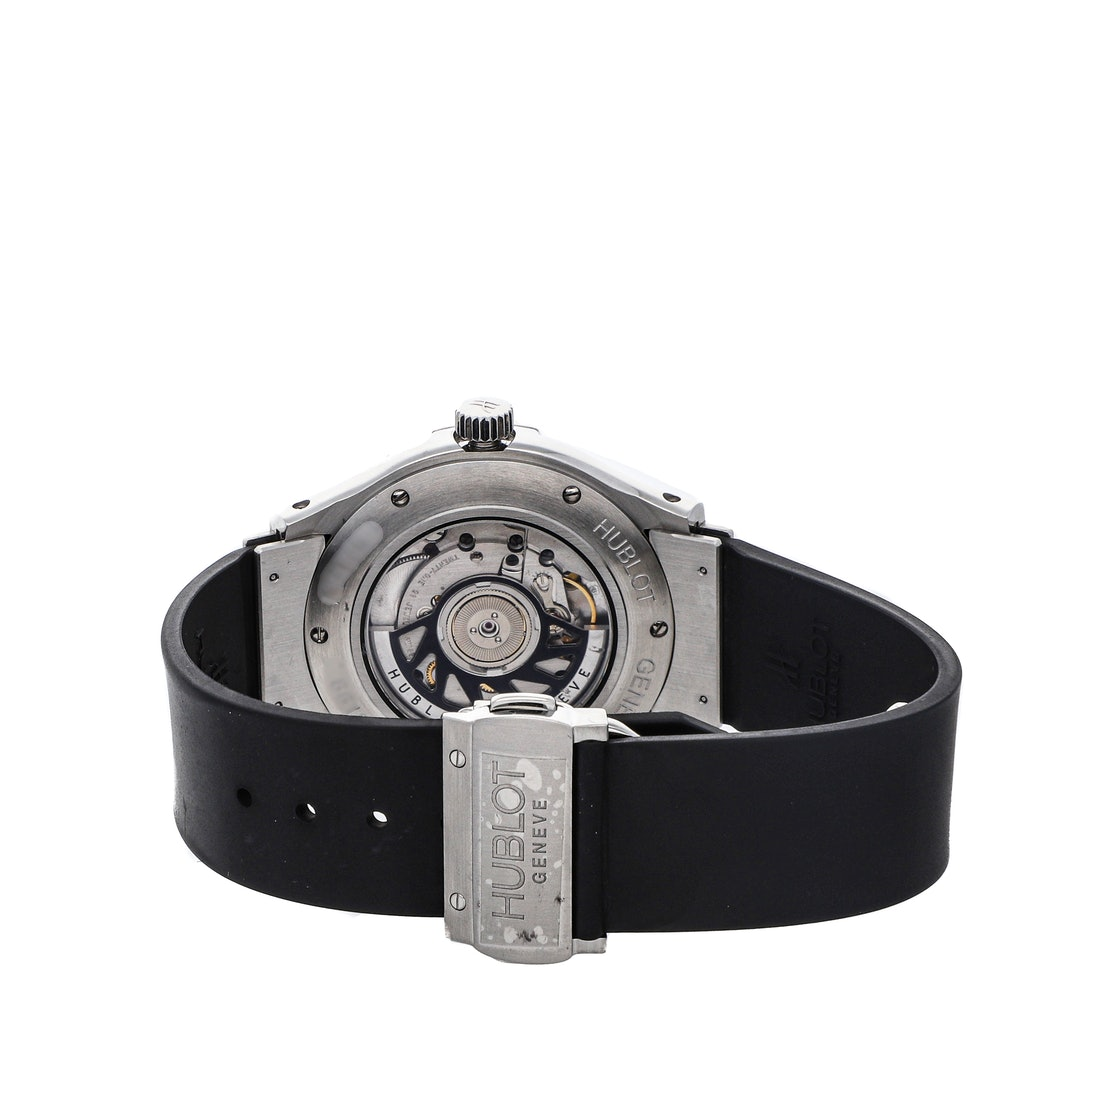 """Hublot Classic Fusion """"George Rodrigue Blue Dog"""" Limited Edition 1915.001.01BL007"""